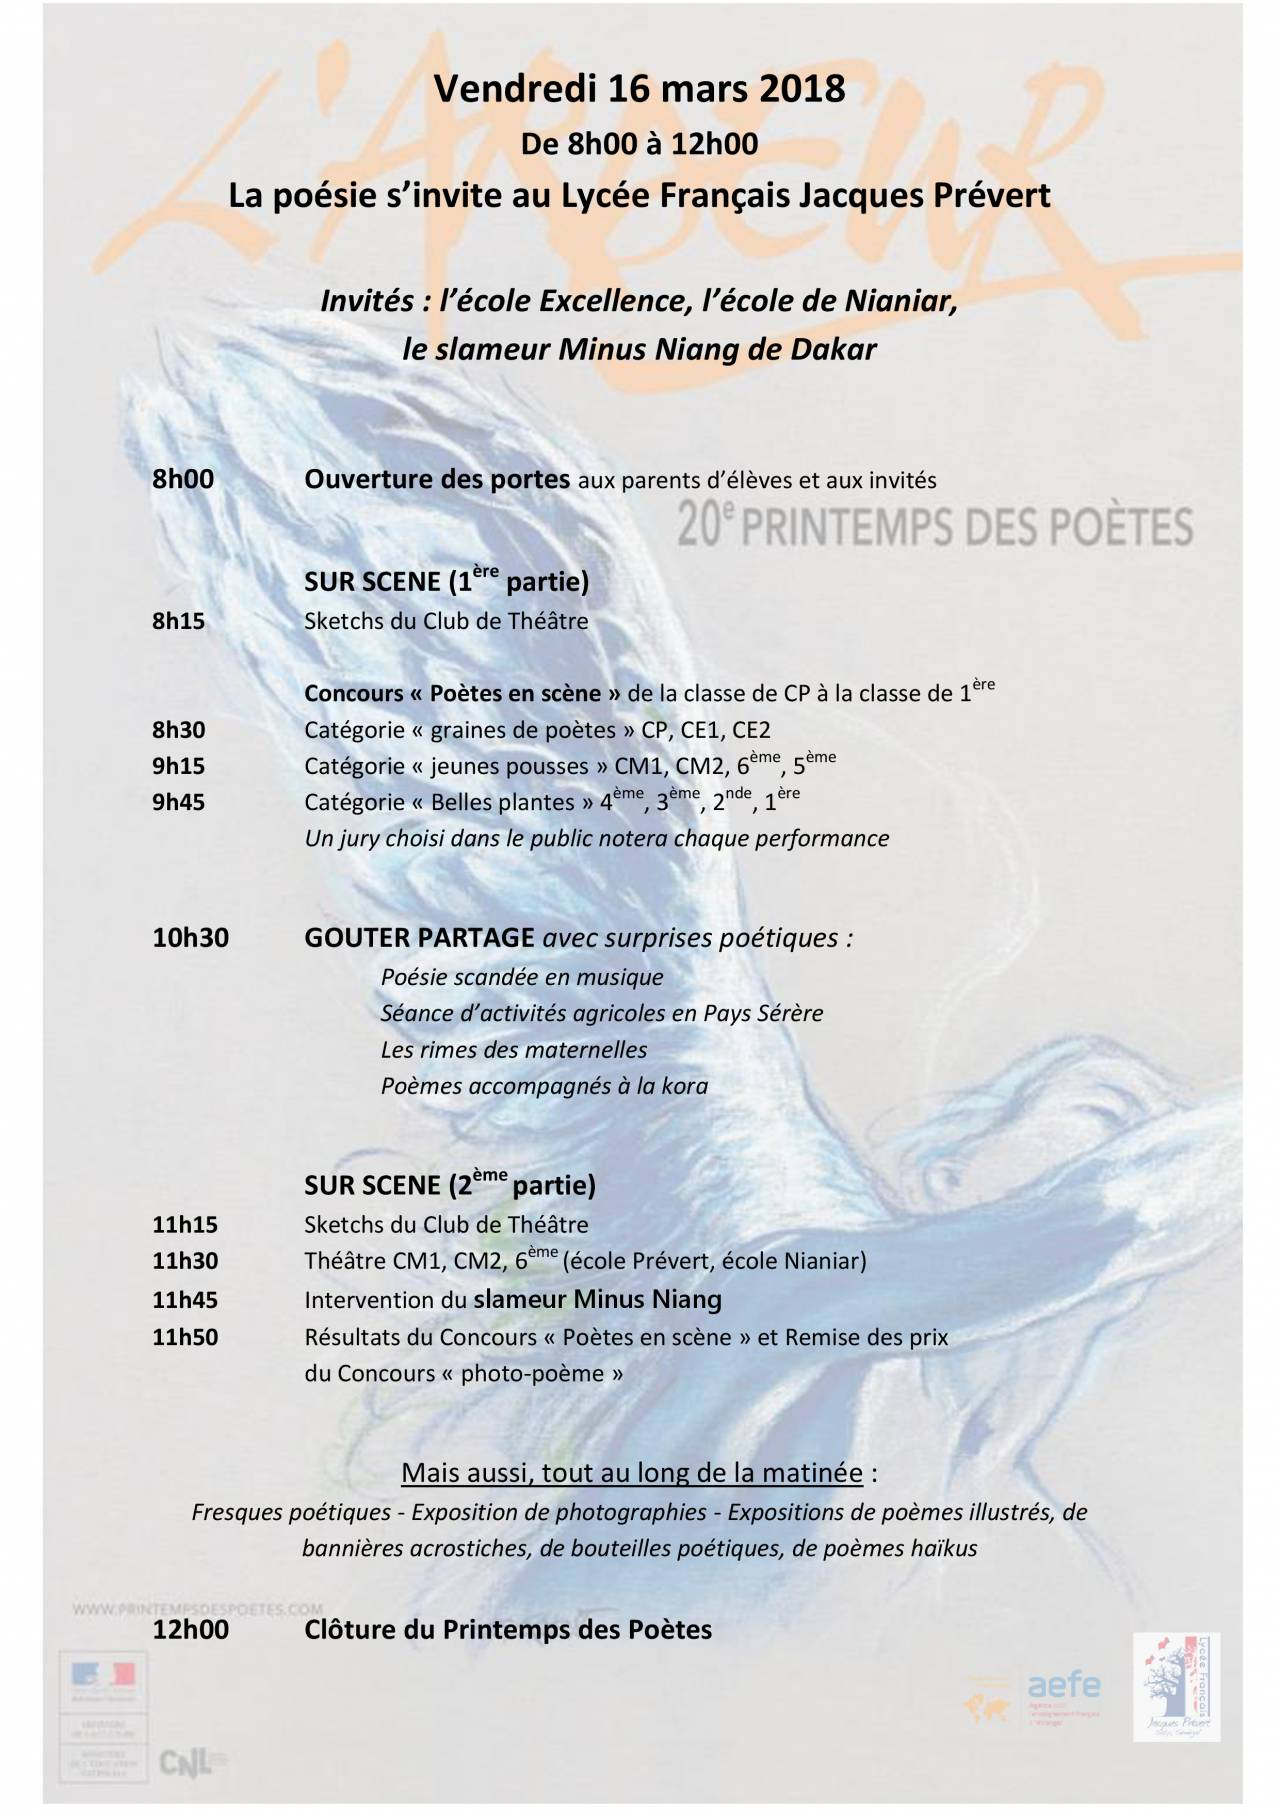 articles/May2019/programme_printemps_des_poetes_2018_couleur-2.jpg